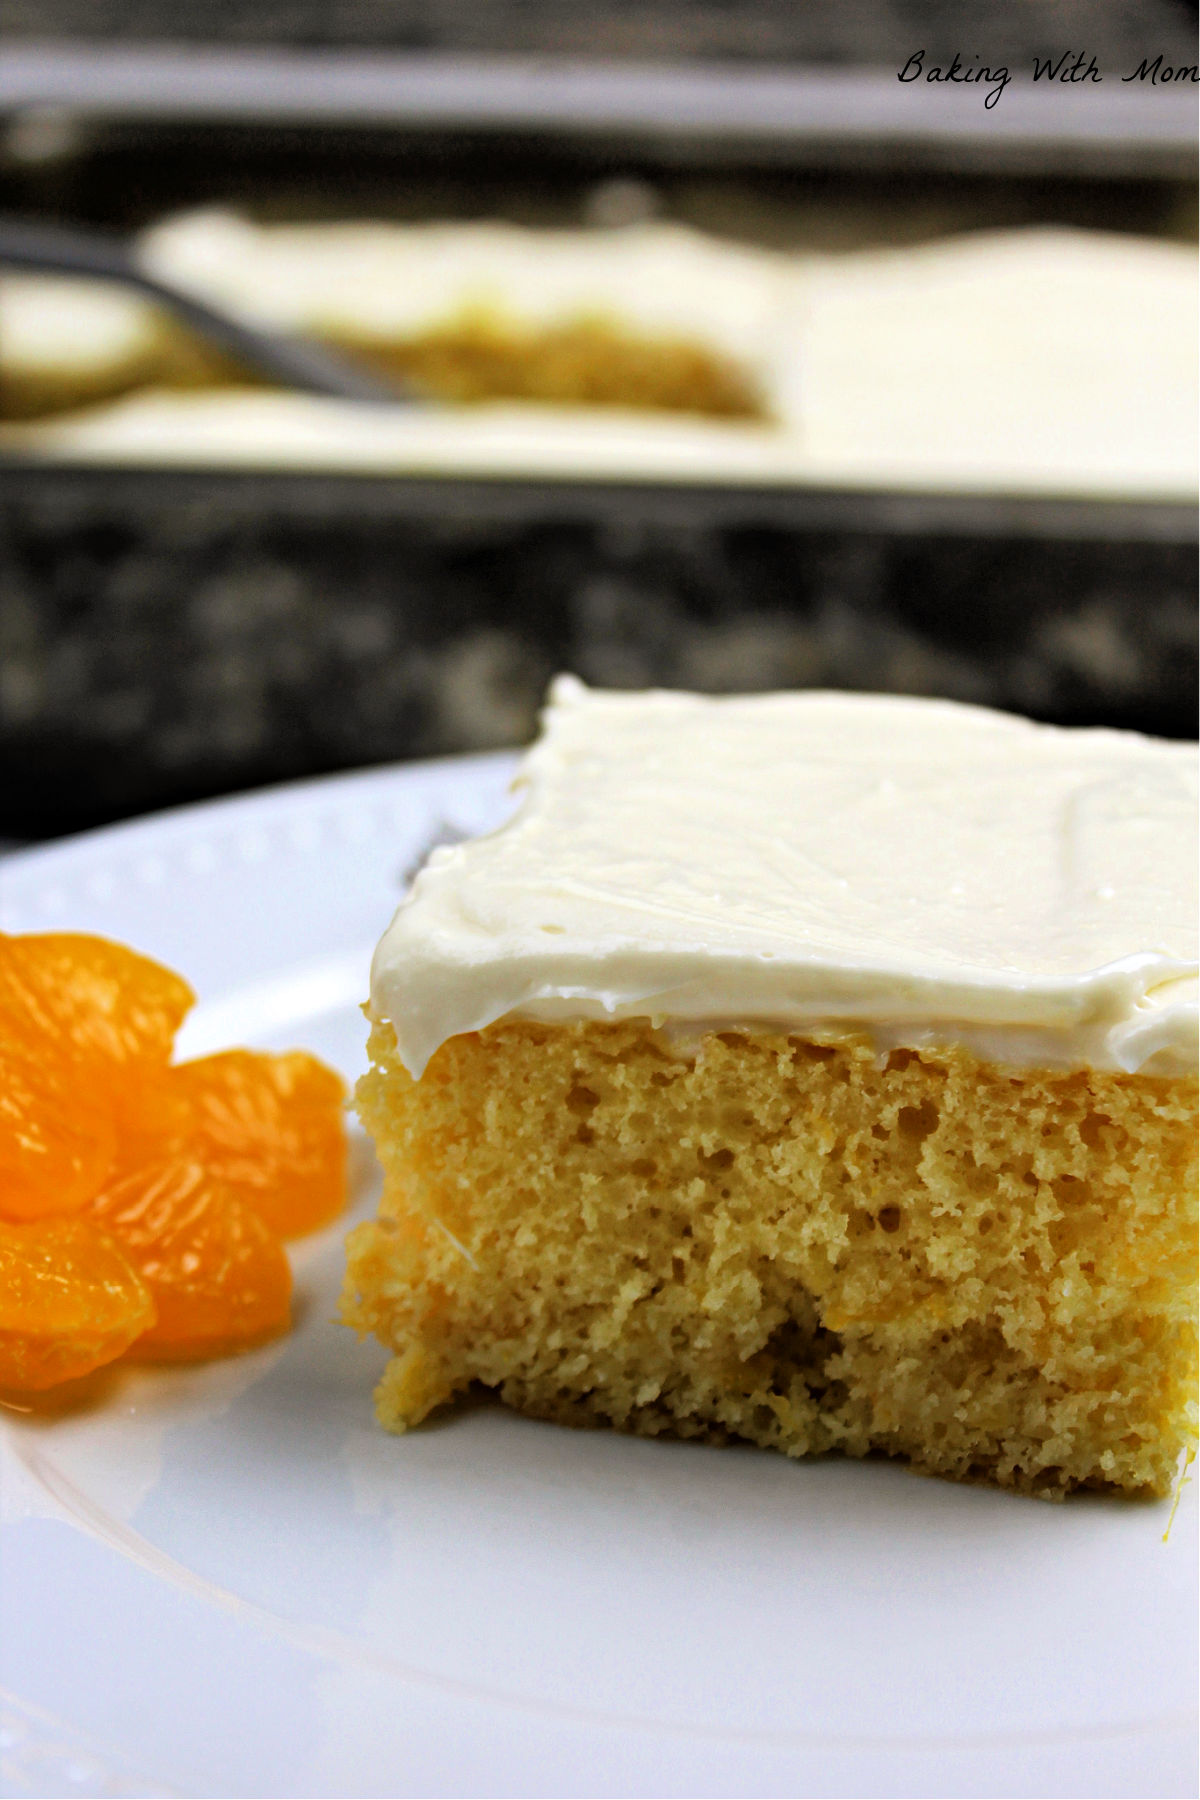 Slice of cake with mandarin oranges besides on a white plate.